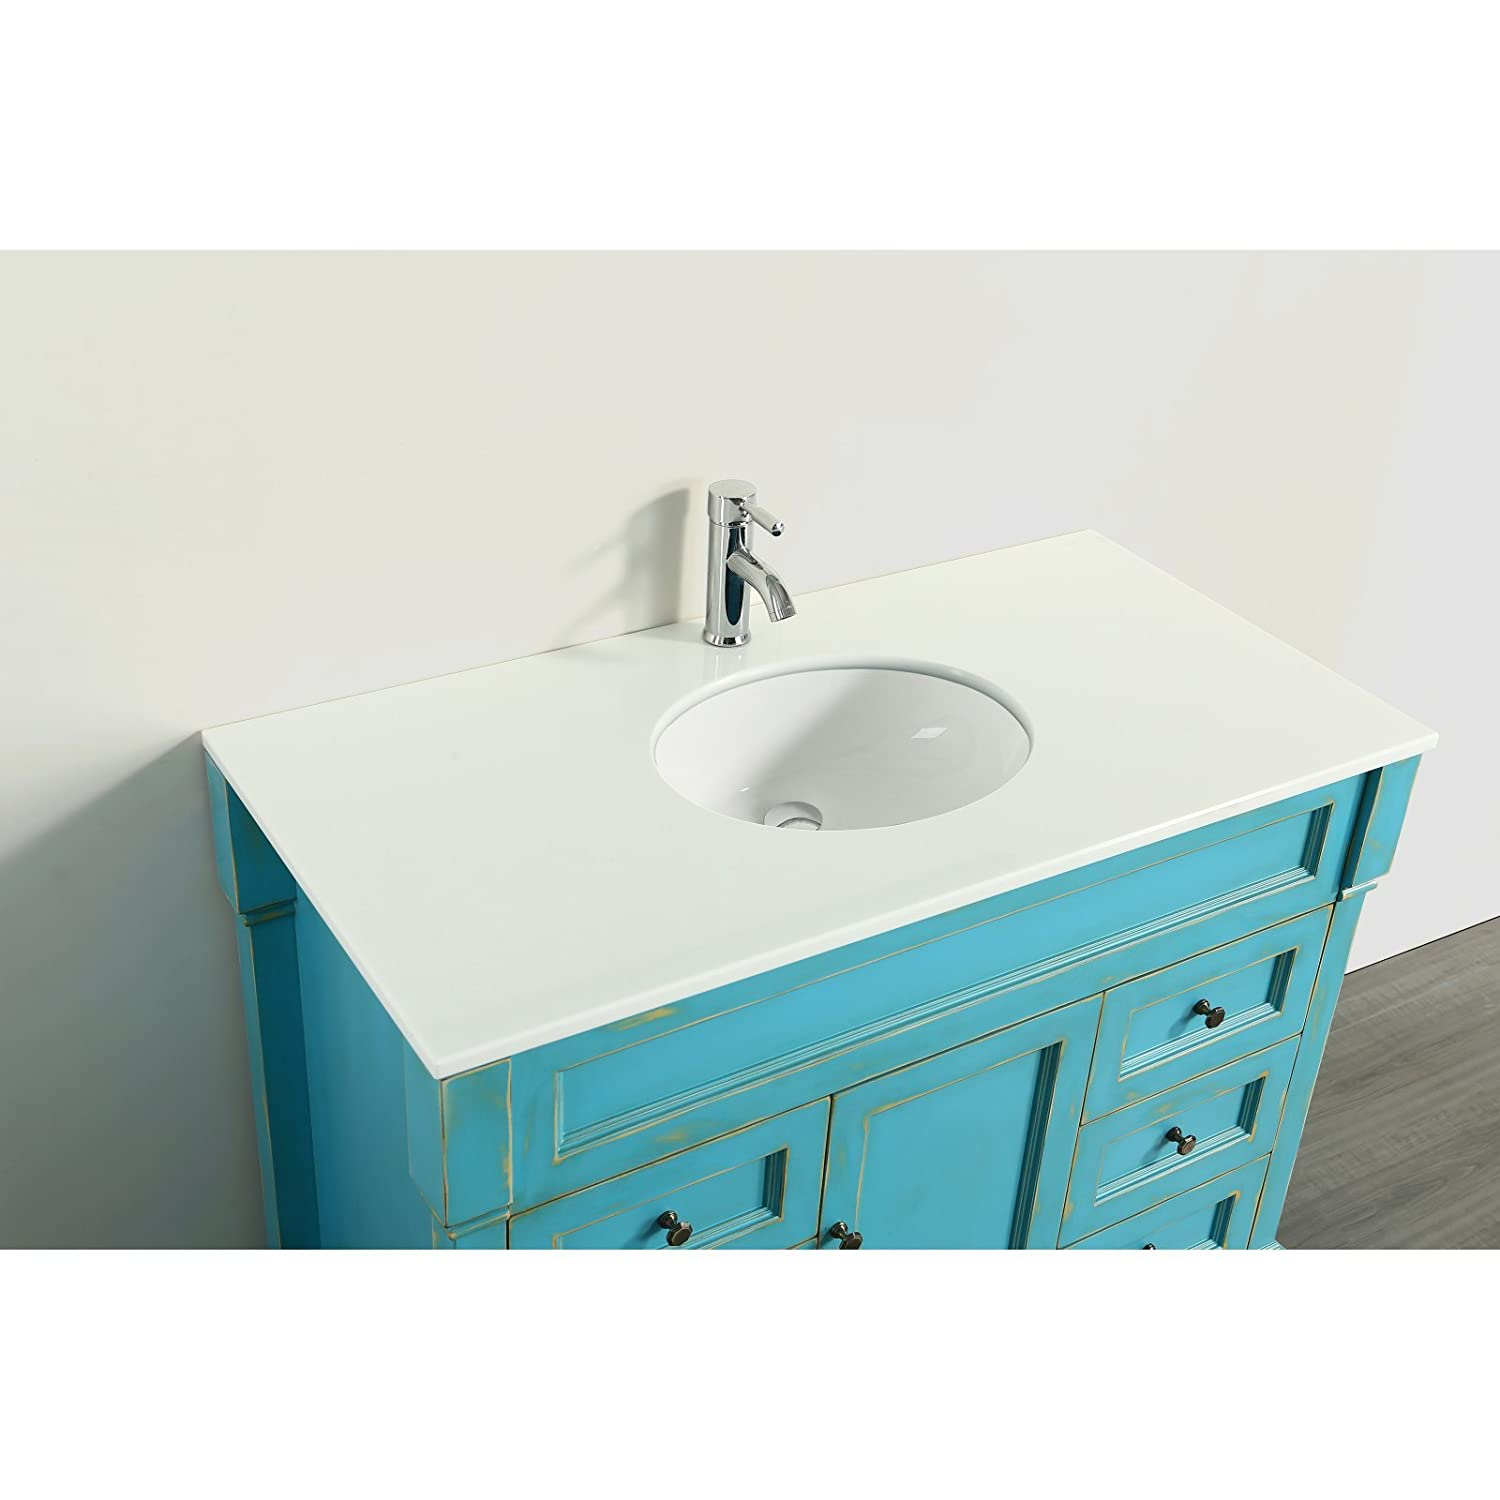 Bosconi SB-278WHPS Bathroom 43 Prime Single Vanity with Oval Undermount Sink, Cabinet, Countertop, 6 Drawers, and a Mirror, White Phoenix Stone, 4 Piece